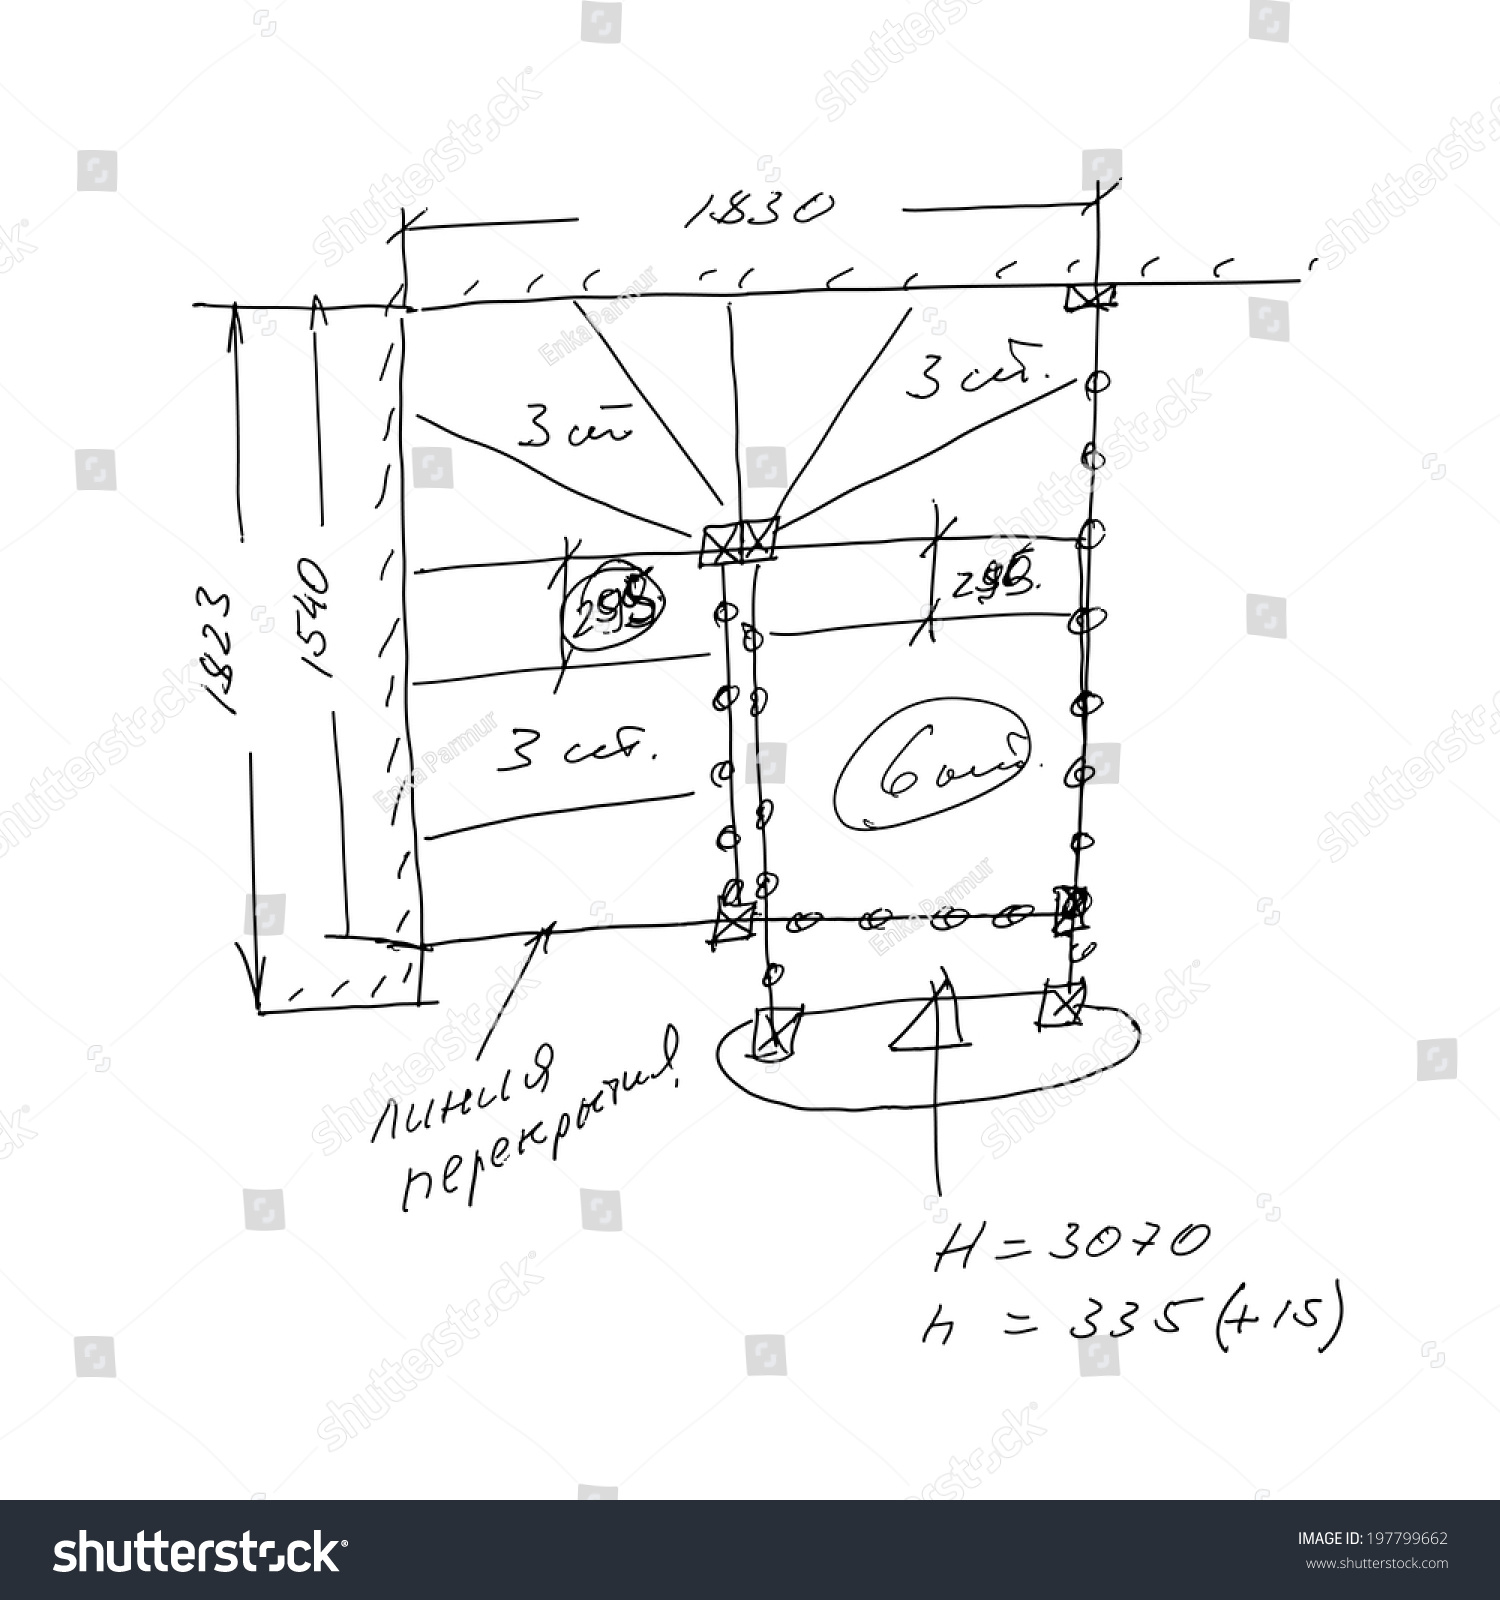 Stair Draft Sketch Black Outline On Stock Vector Royalty Free Staircase Circuit Wiring Diagram White Background Illustration